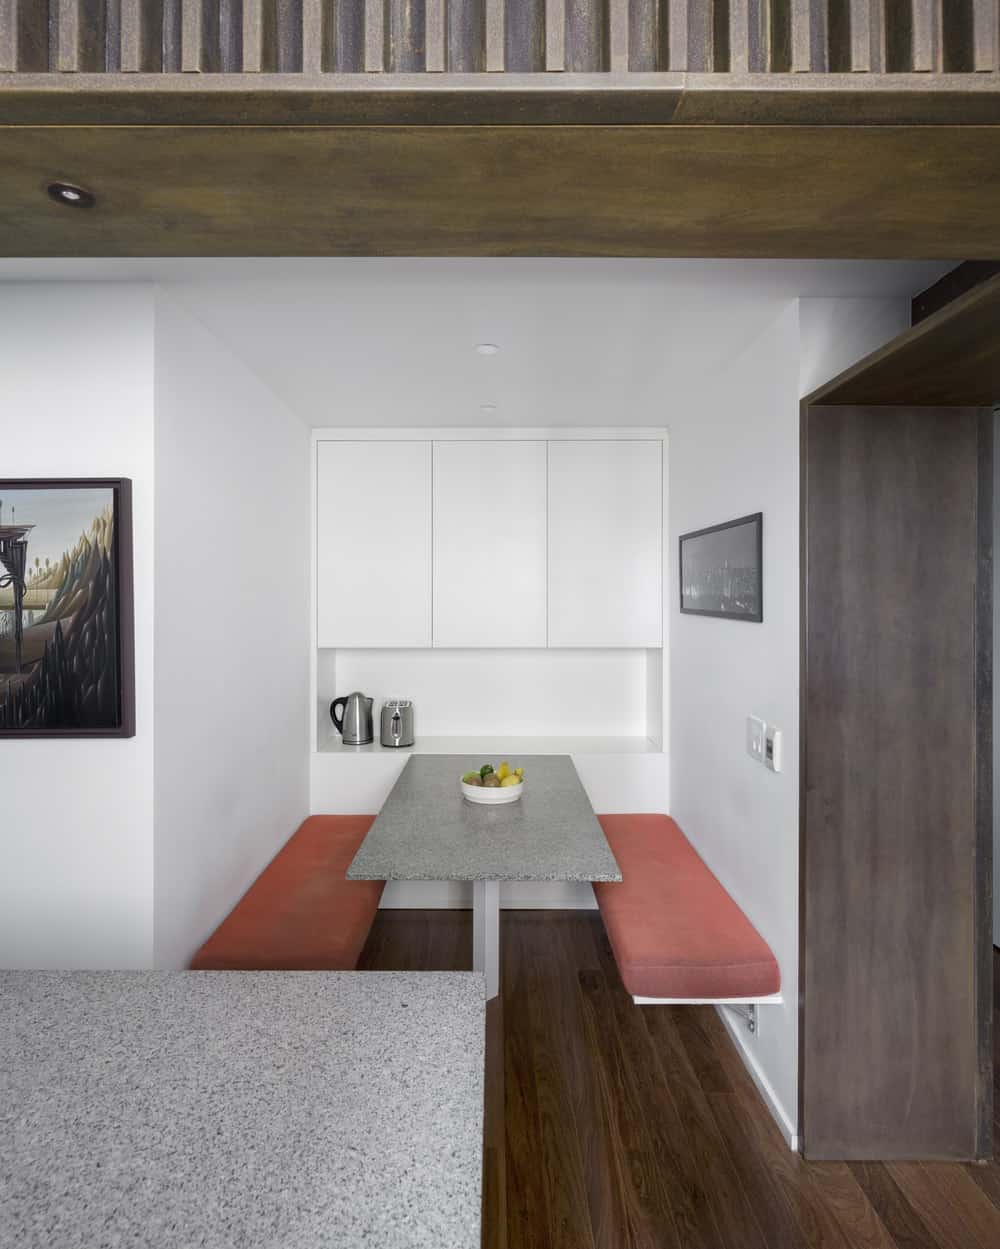 On the side of this kitchen is a booth-style breakfast nook with built-in table and benches.